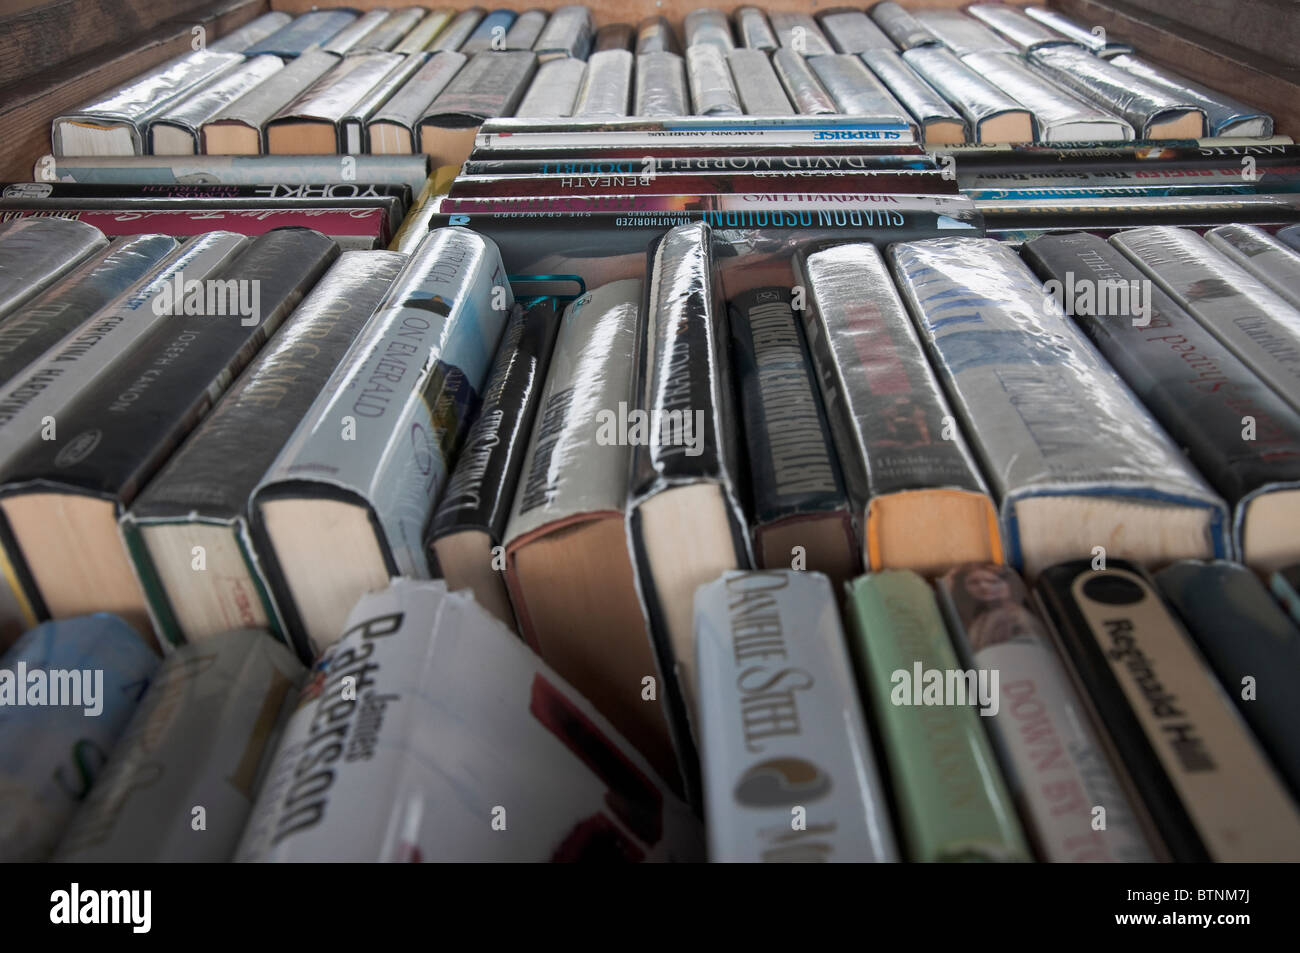 Collection of Secondhand Books for sale - Stock Image